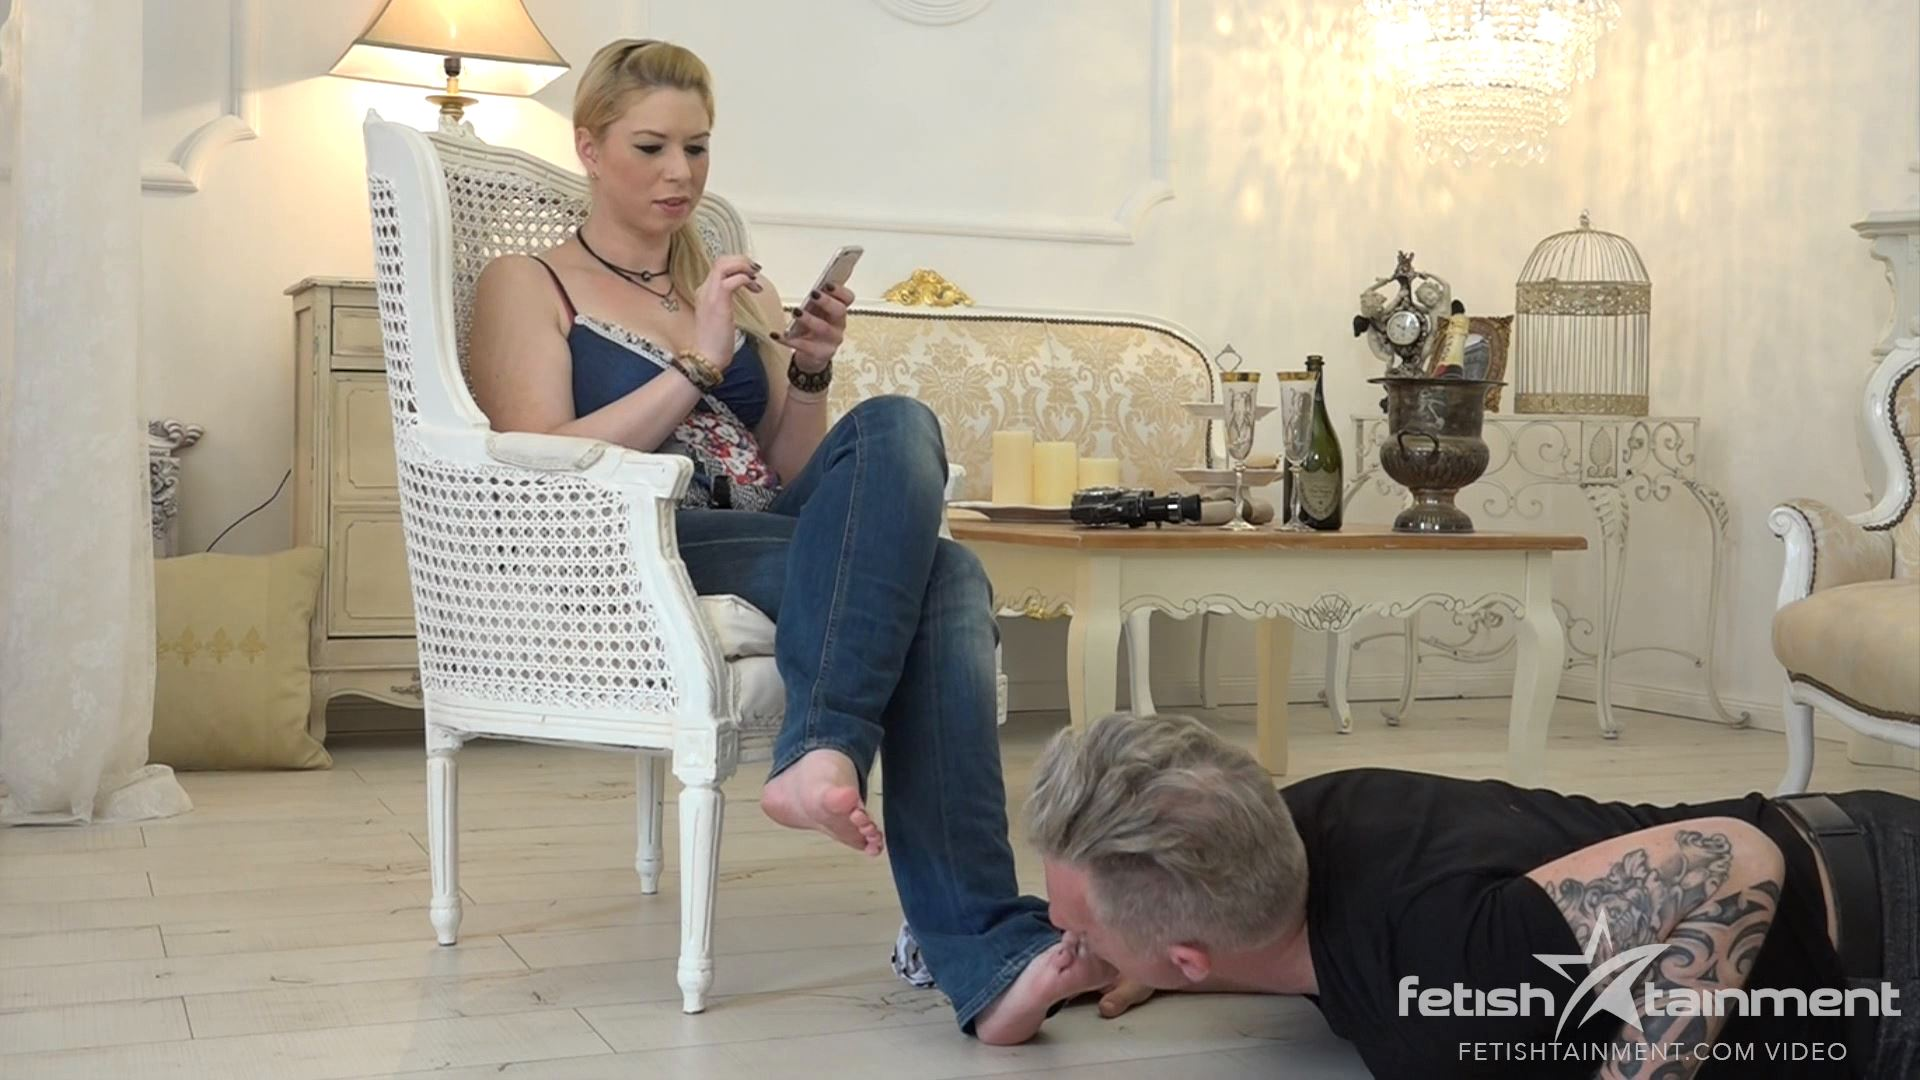 Tina D.'s sexy video From: 14.07.2016 - FETISHTAINMENT / FEMDOM GOLD - FULL HD/1080p/MP4